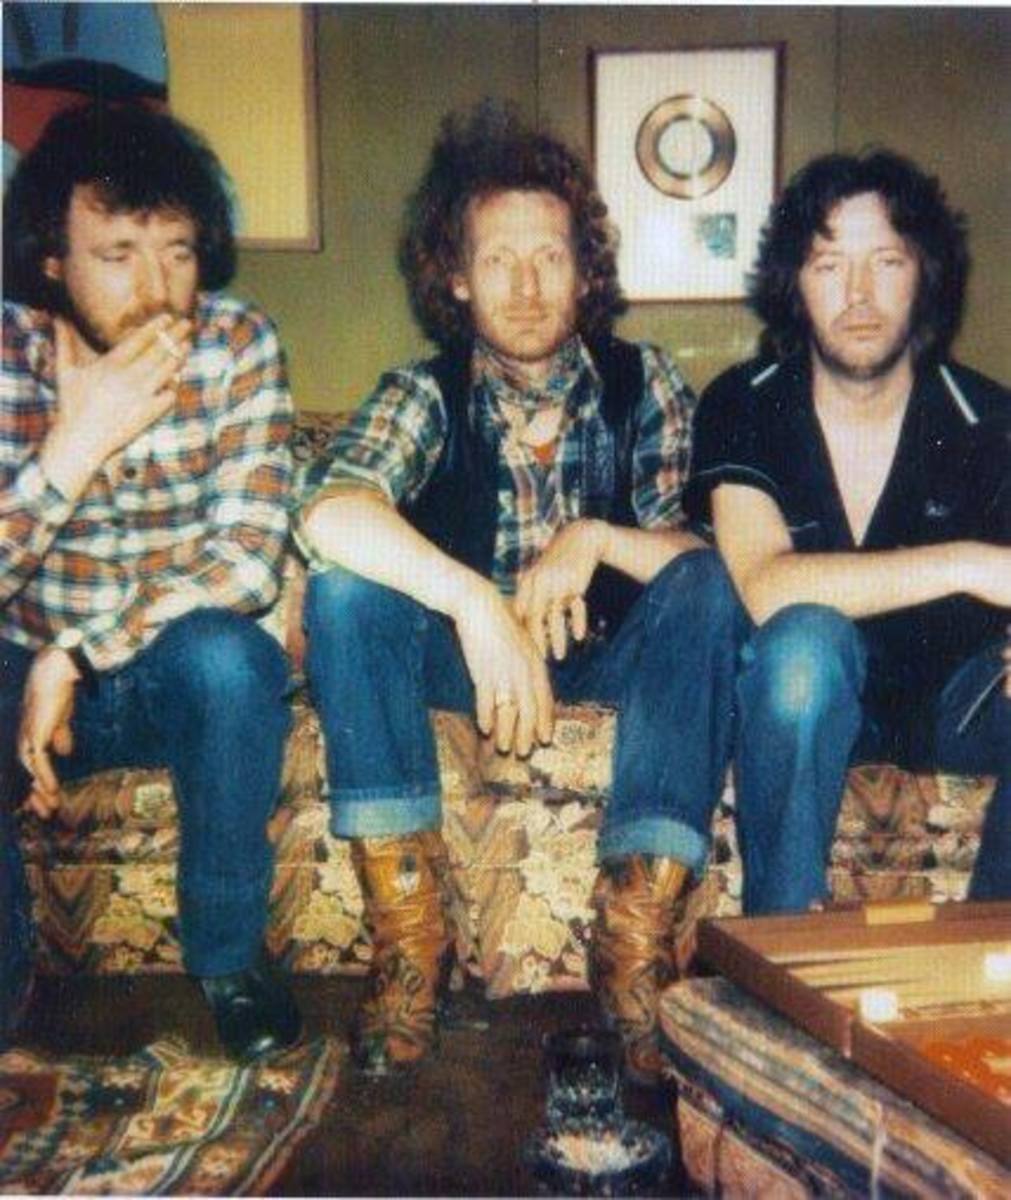 Bruce, Baker, and Clapton in 1976